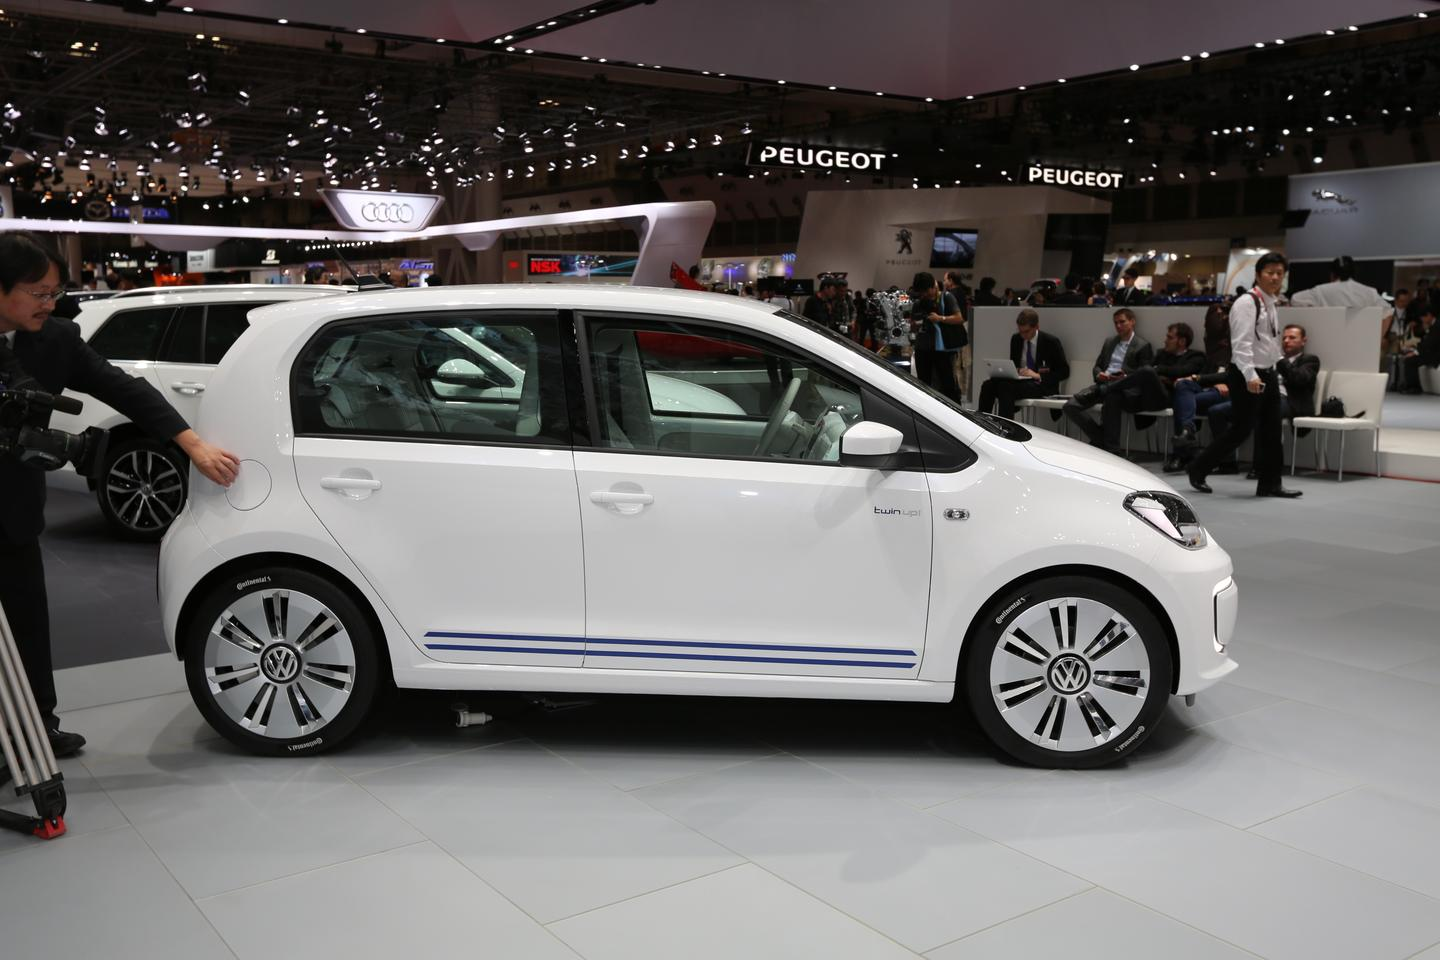 Twin Up! made its world debut at the Tokyo Motor Show this week (Photo: Mike Hanlon / Gizmag.com)